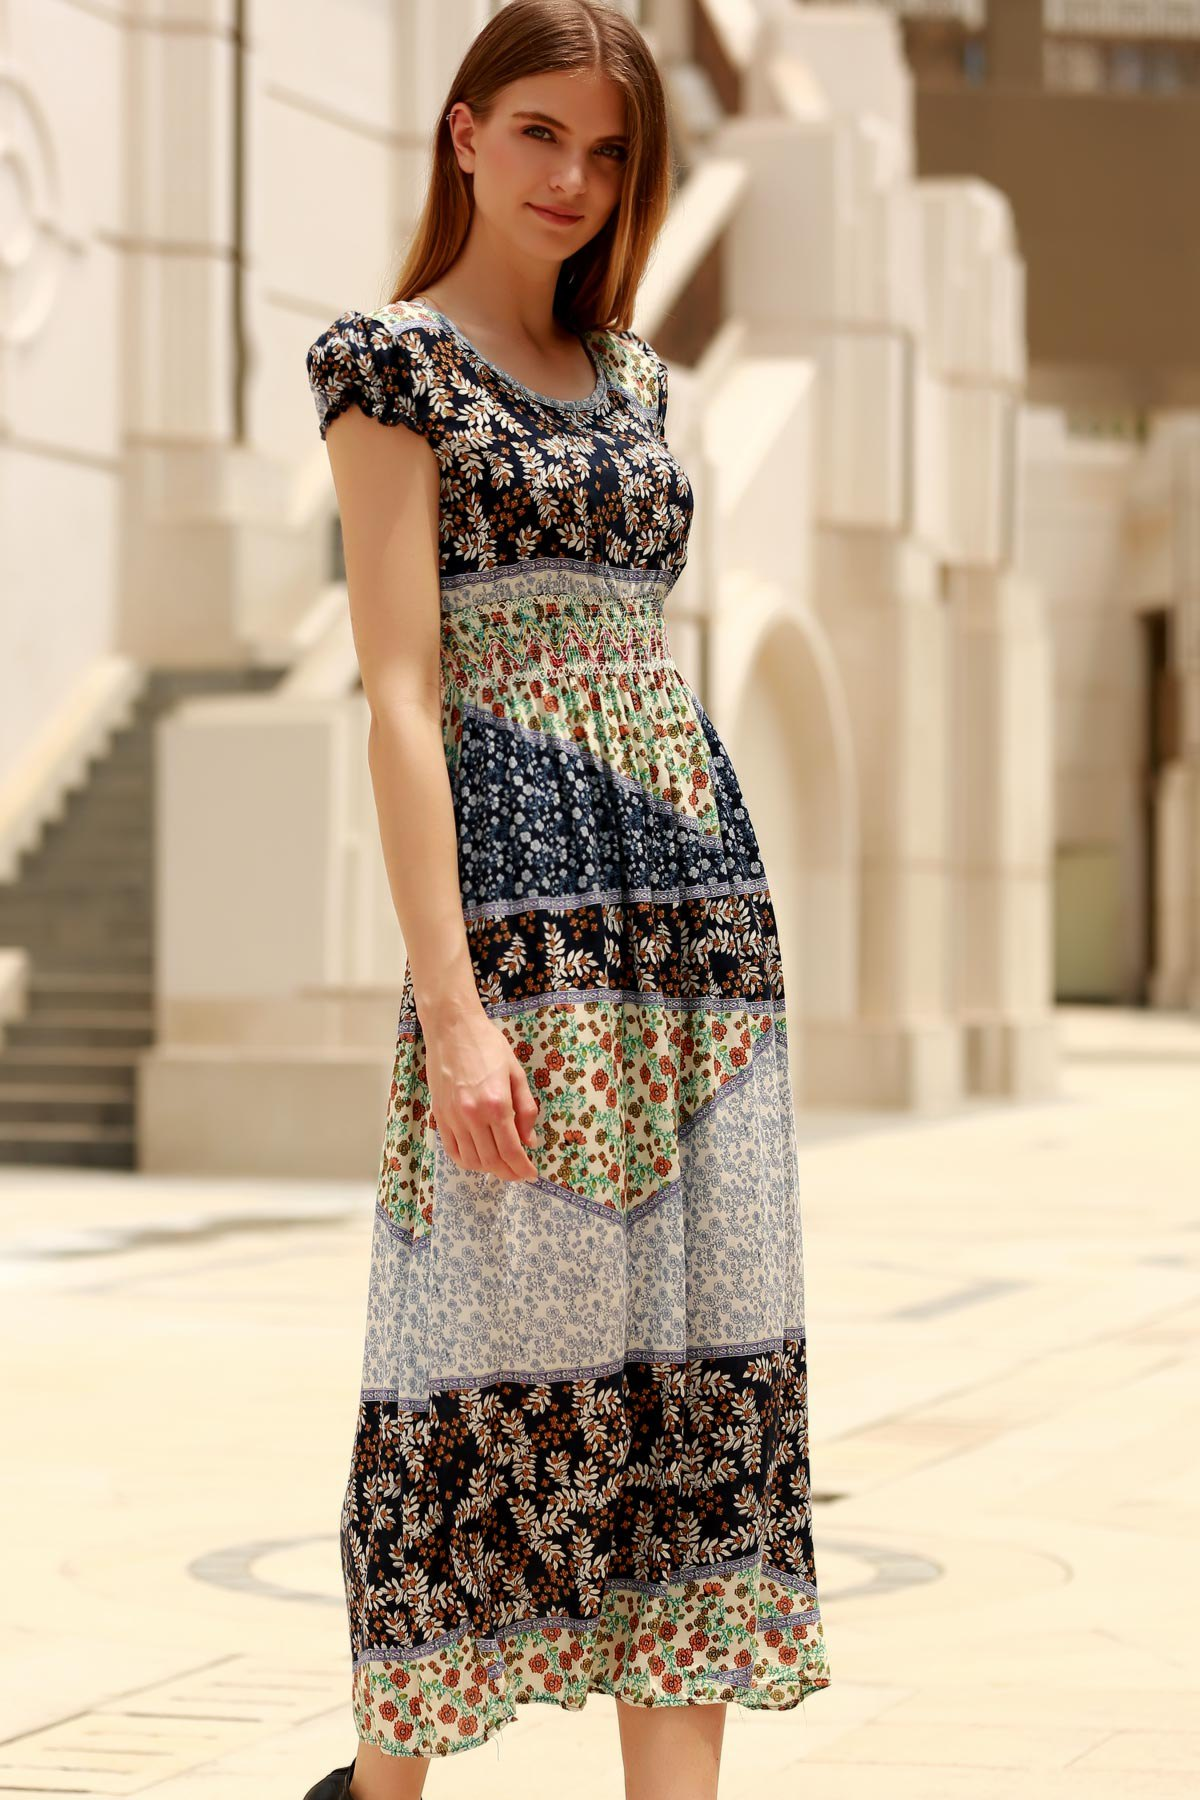 Trendy Short Sleeve Hit Color Geometrical Print Dress For Women - COLORMIX ONE SIZE(FIT SIZE XS TO M)